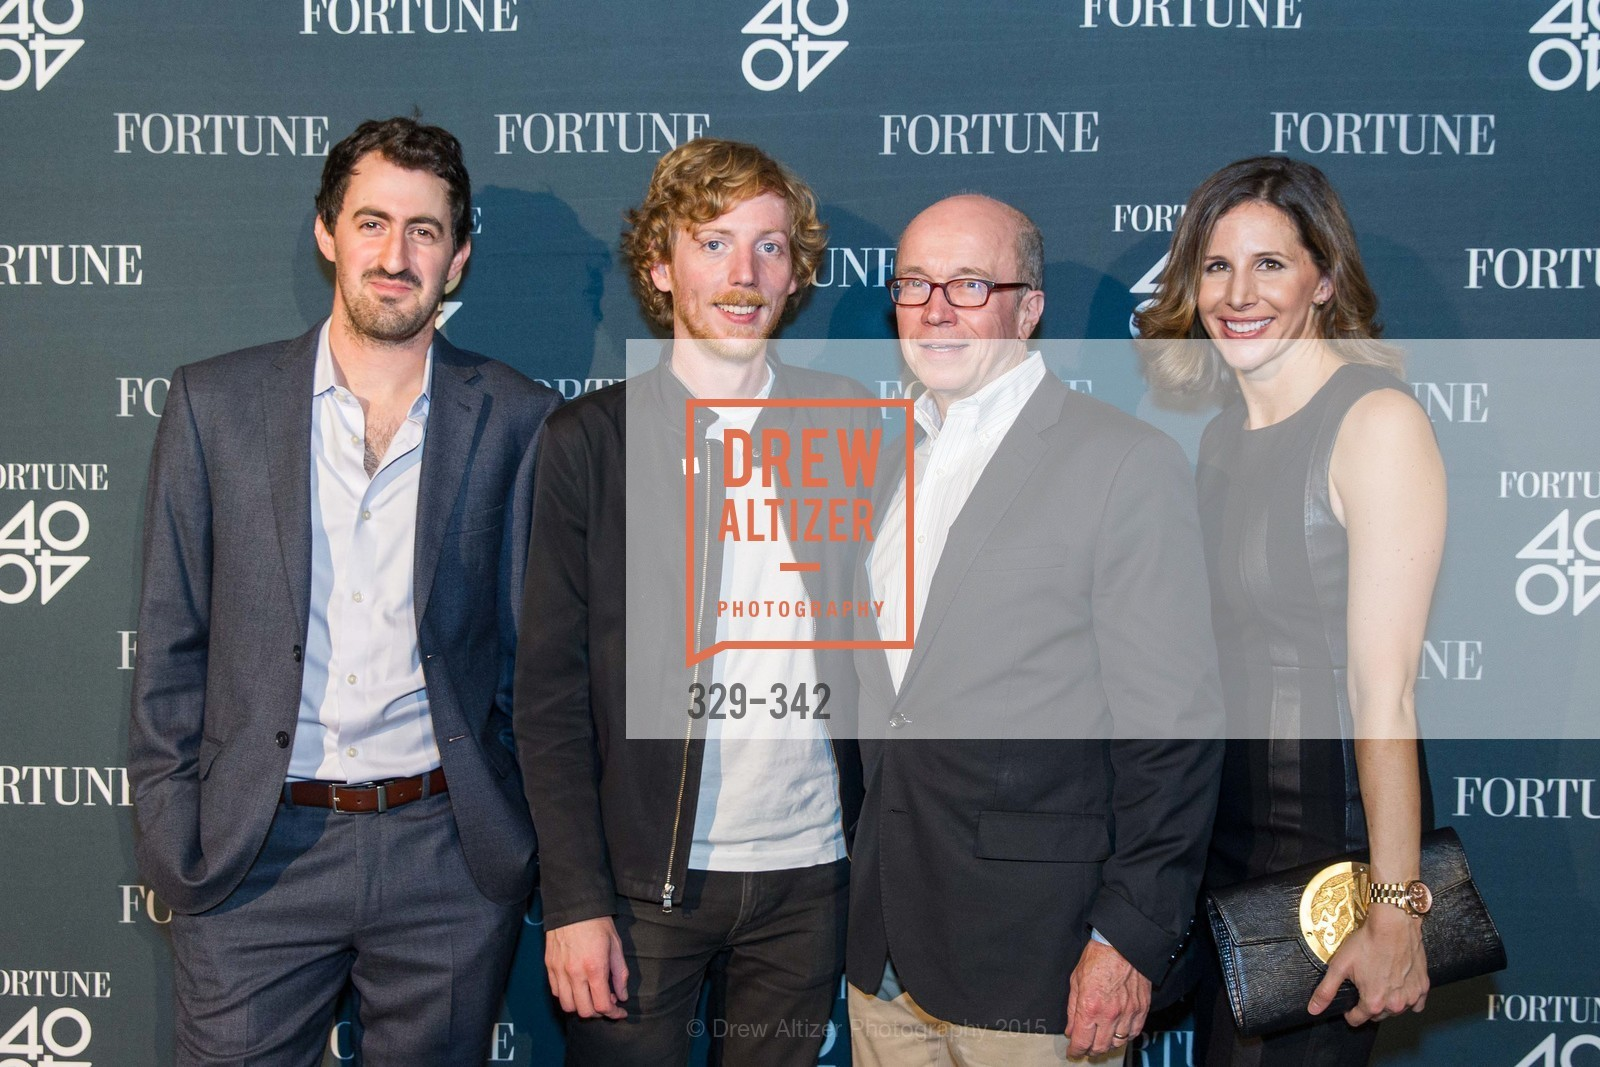 Daniel Roberts, Chris Wanstrath, Alan Murray, Leigh Gallagher, Fortune's 40 Under 40 Party, GitHub HQ. 88 Colin P Kelly Jr St, October 7th, 2015,Drew Altizer, Drew Altizer Photography, full-service event agency, private events, San Francisco photographer, photographer California